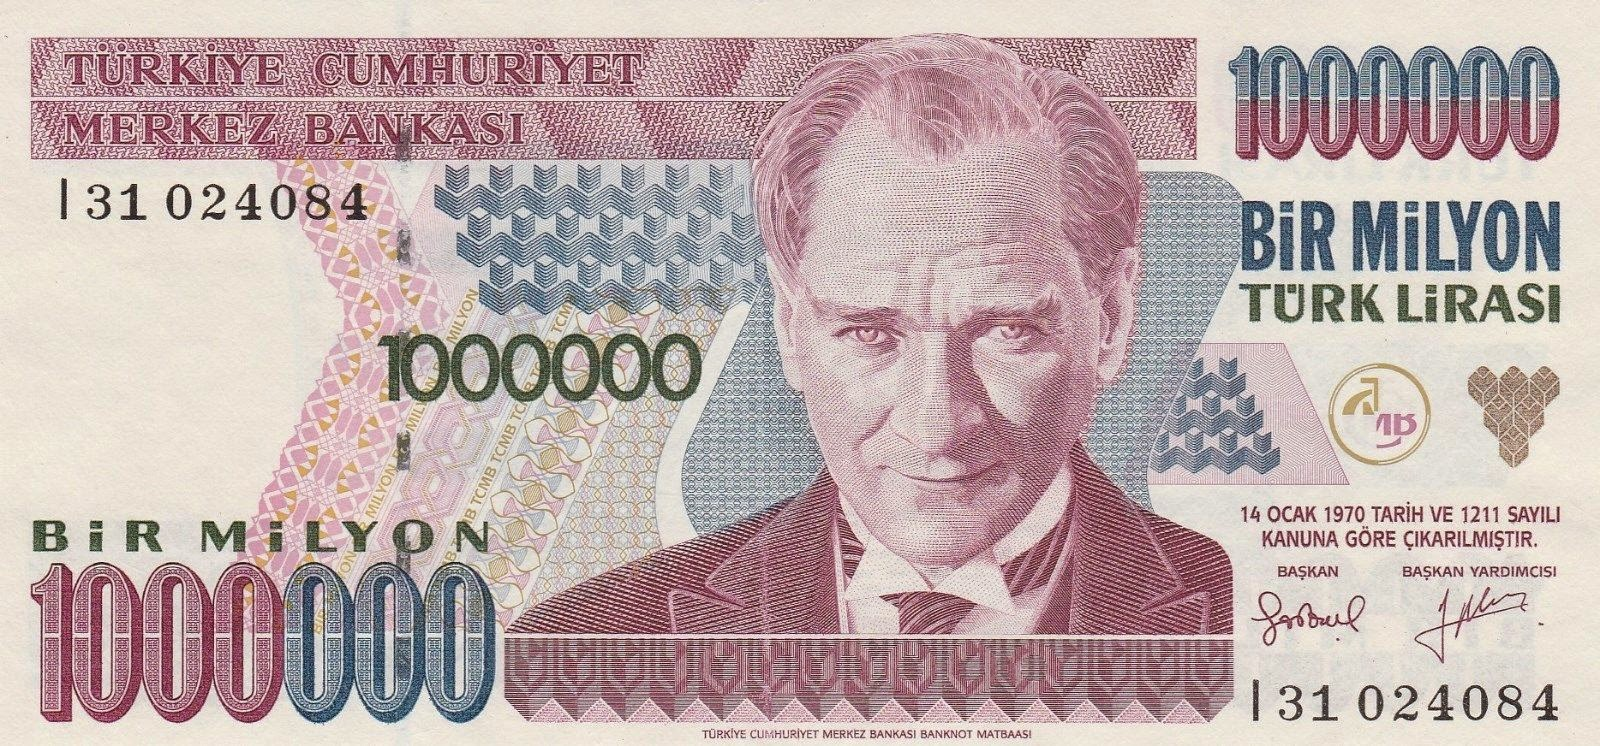 Turkey Banknotes 1 Million Turkish Lira Türk Lirasi note Mustafa Kemal Atatürk